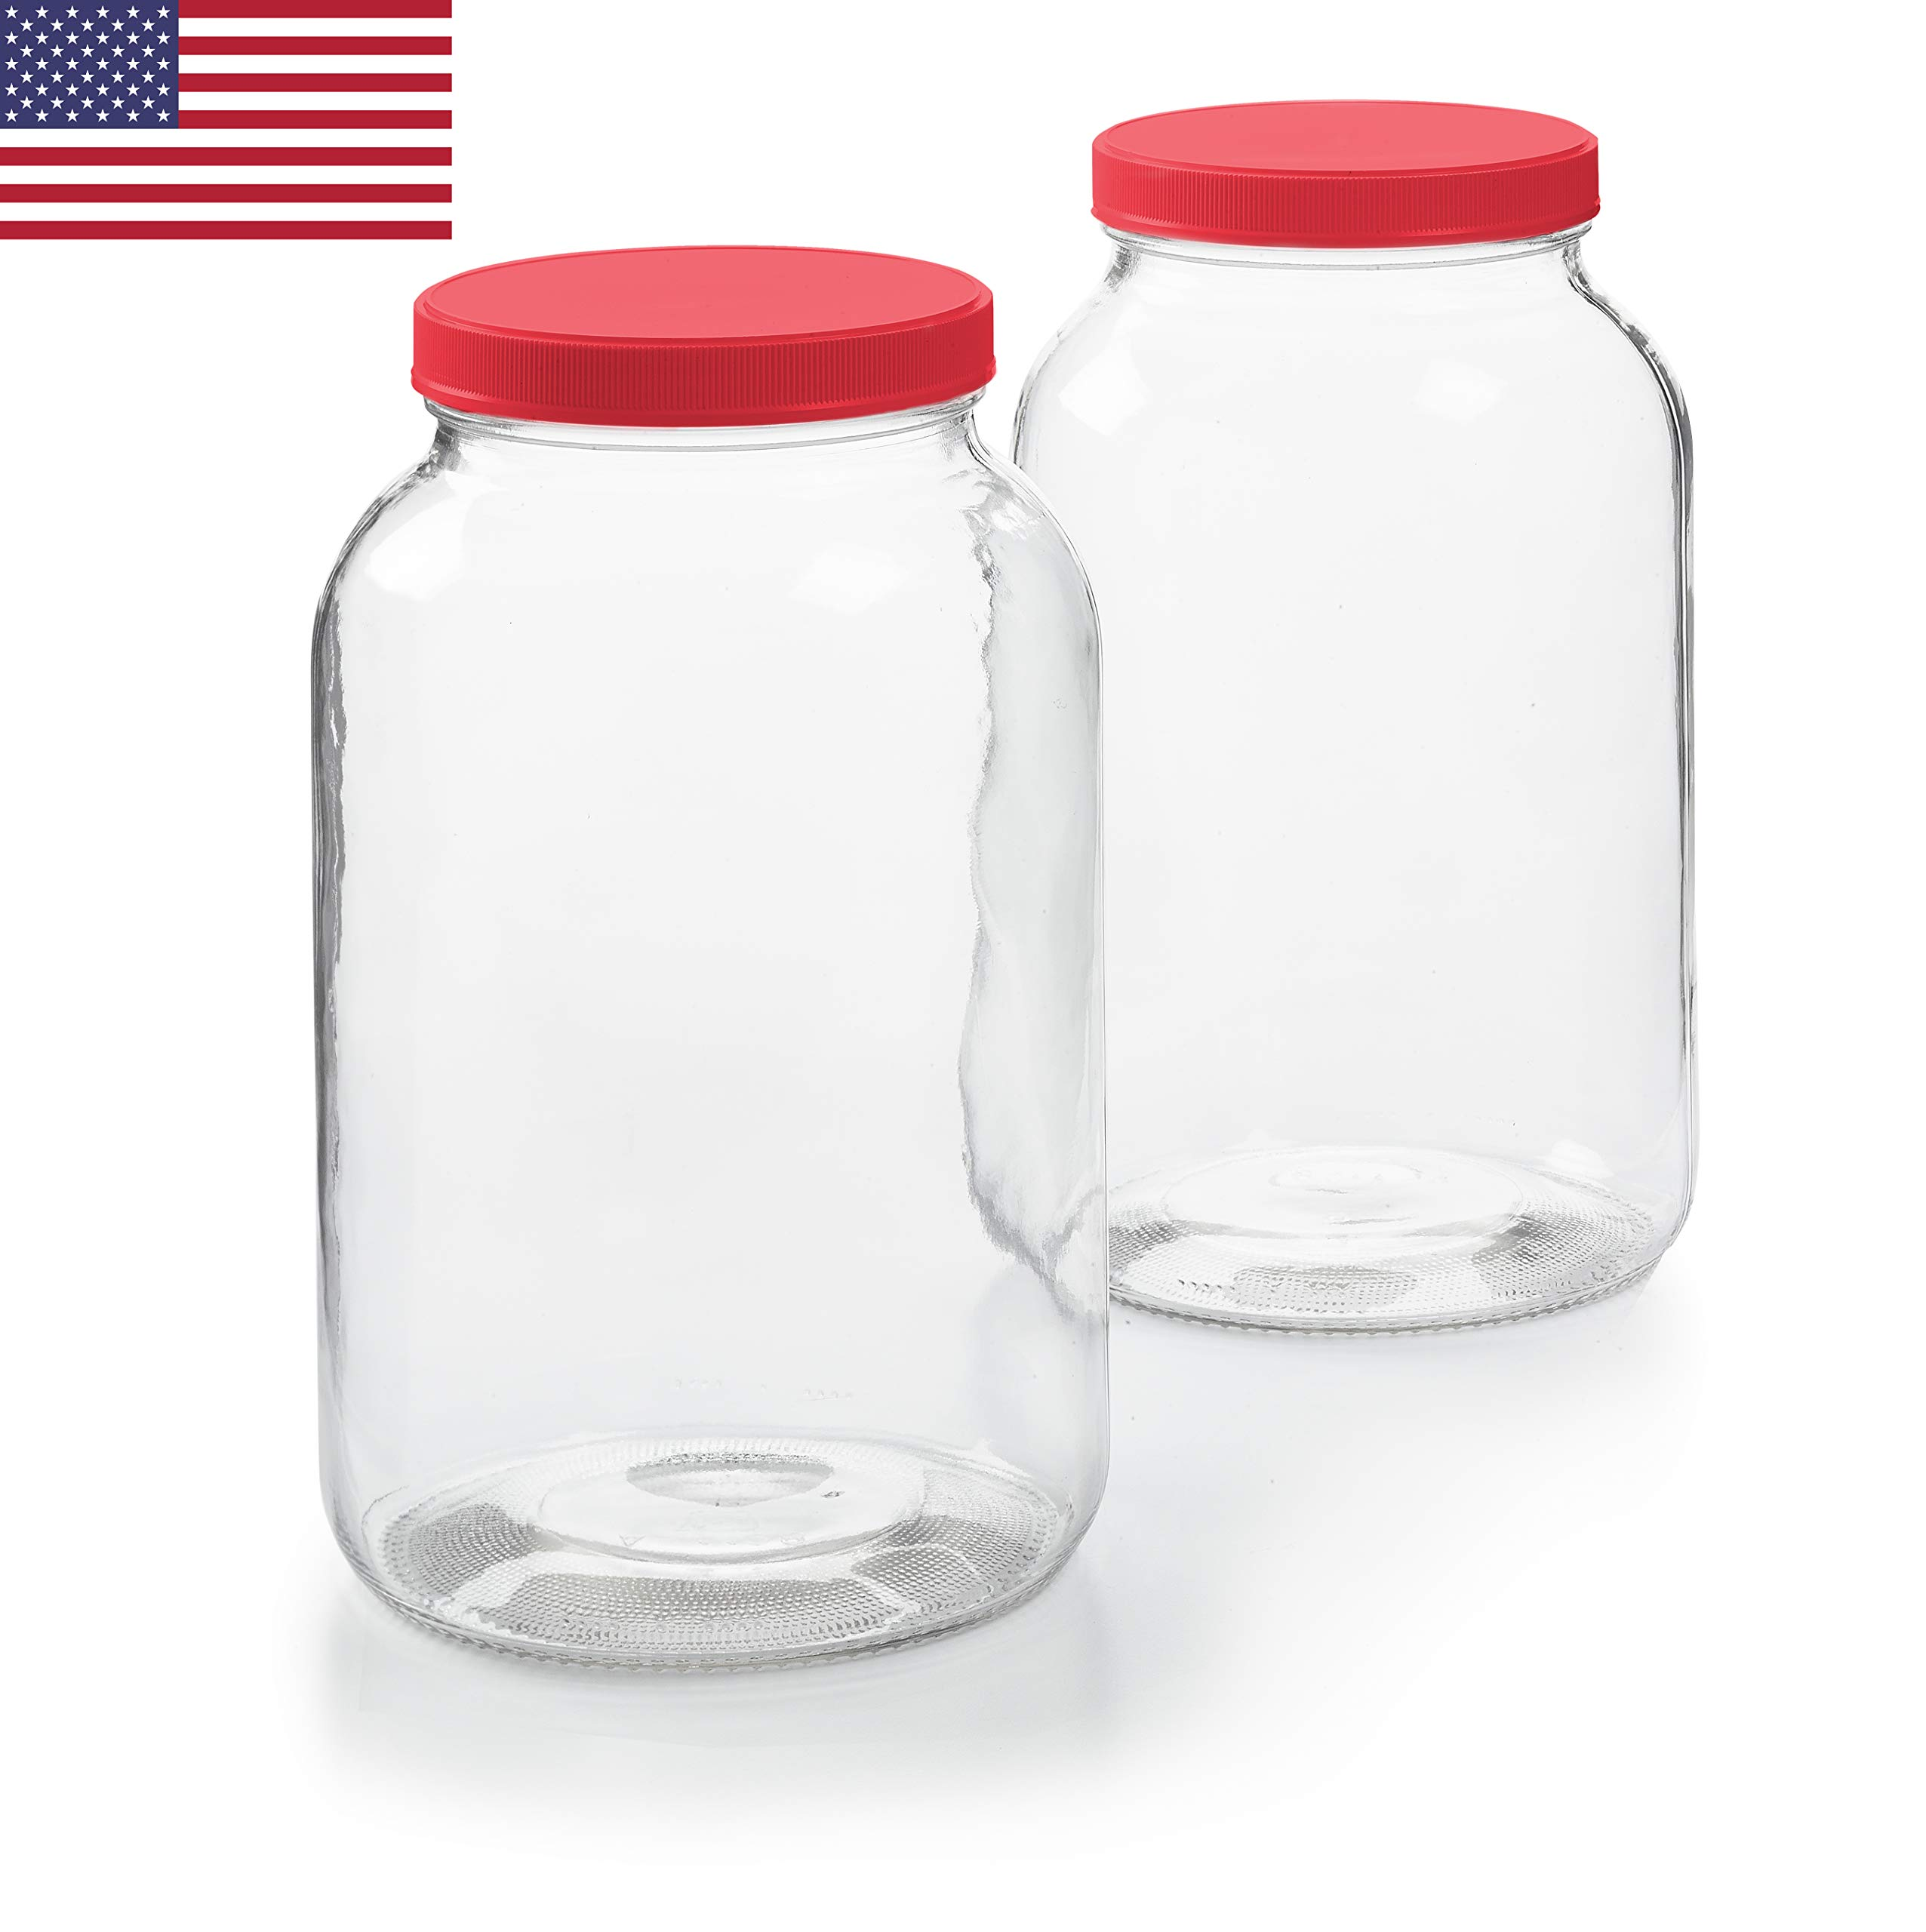 2 Pack - 1 Gallon Glass Jar w/Plastic Airtight Lid, Muslin Cloth, Rubber Band - Made in USA, Wide Mouth Easy to Clean - BPA Free - Kombucha, Kefir, Canning, Sun Tea, Fermentation, Food Storage by Vibz